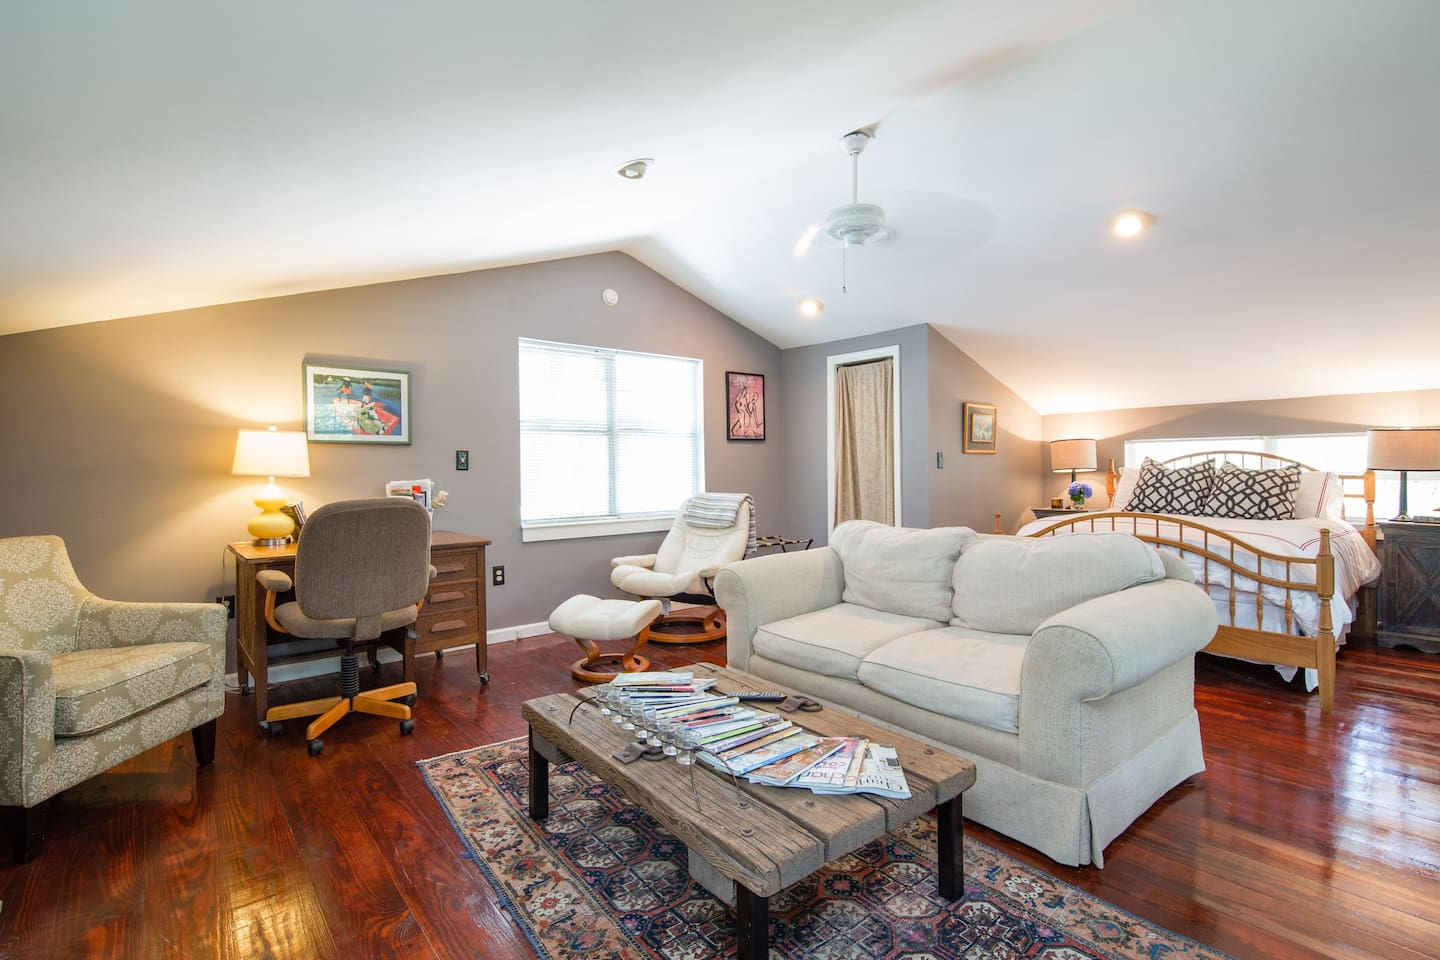 A large space with a full sized bed, love seat, lounge chairs, and a desk